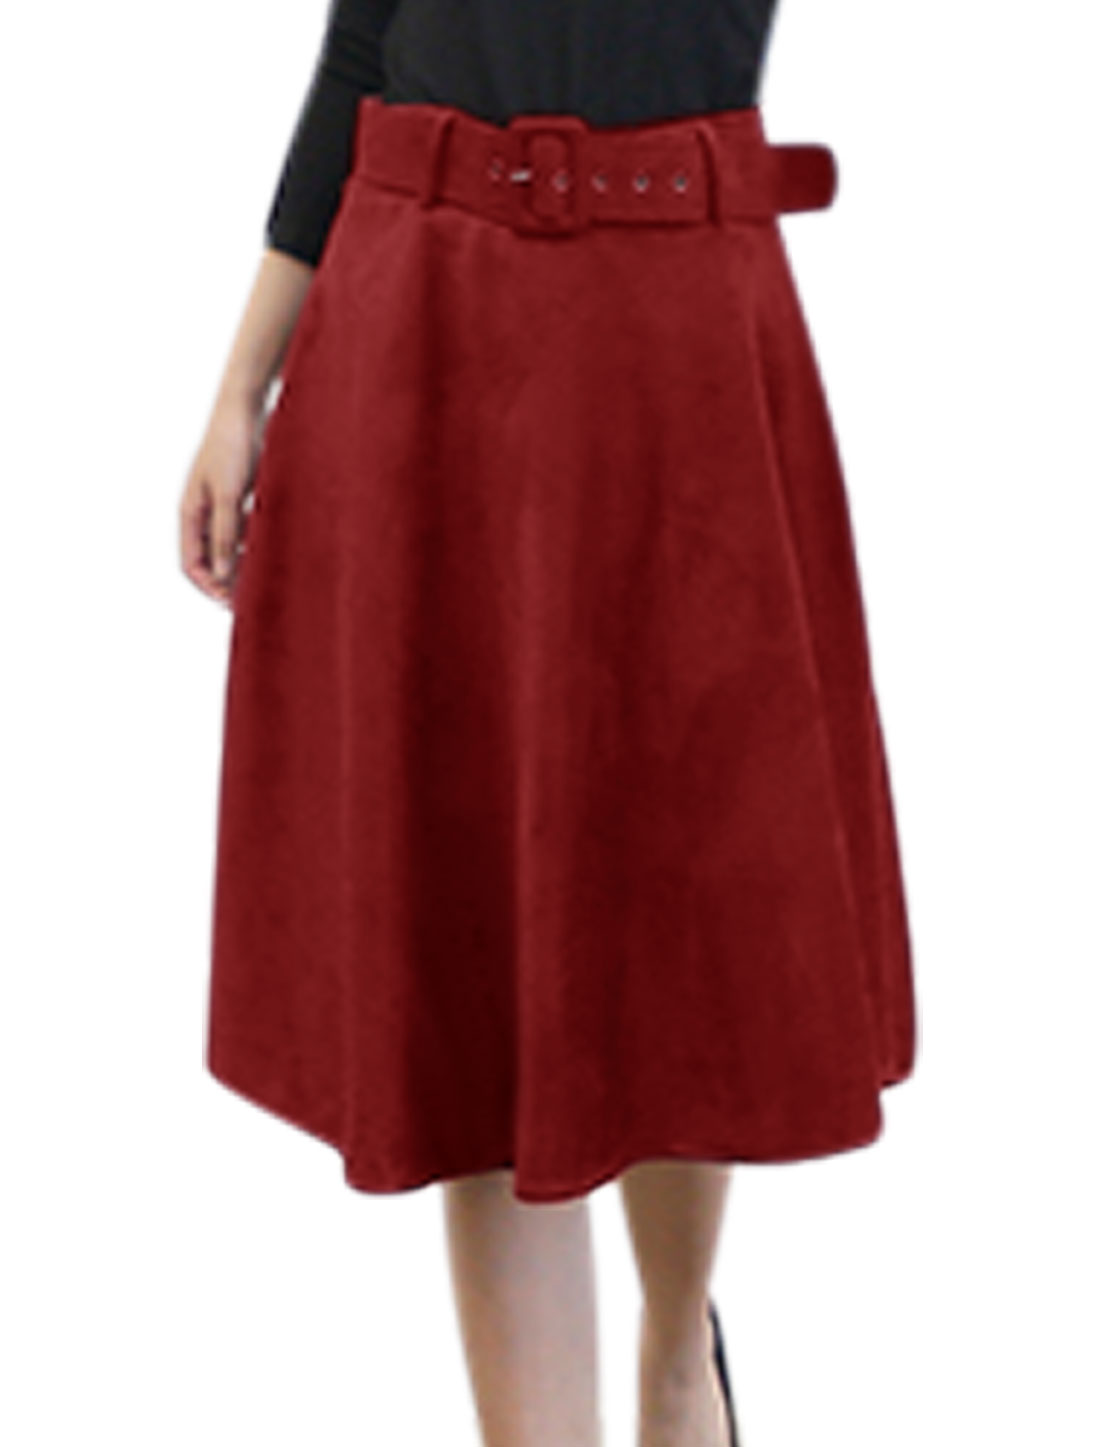 Women High Waist Half Zip Closure Casual Full Skirt w Removable Belt Burgundy M